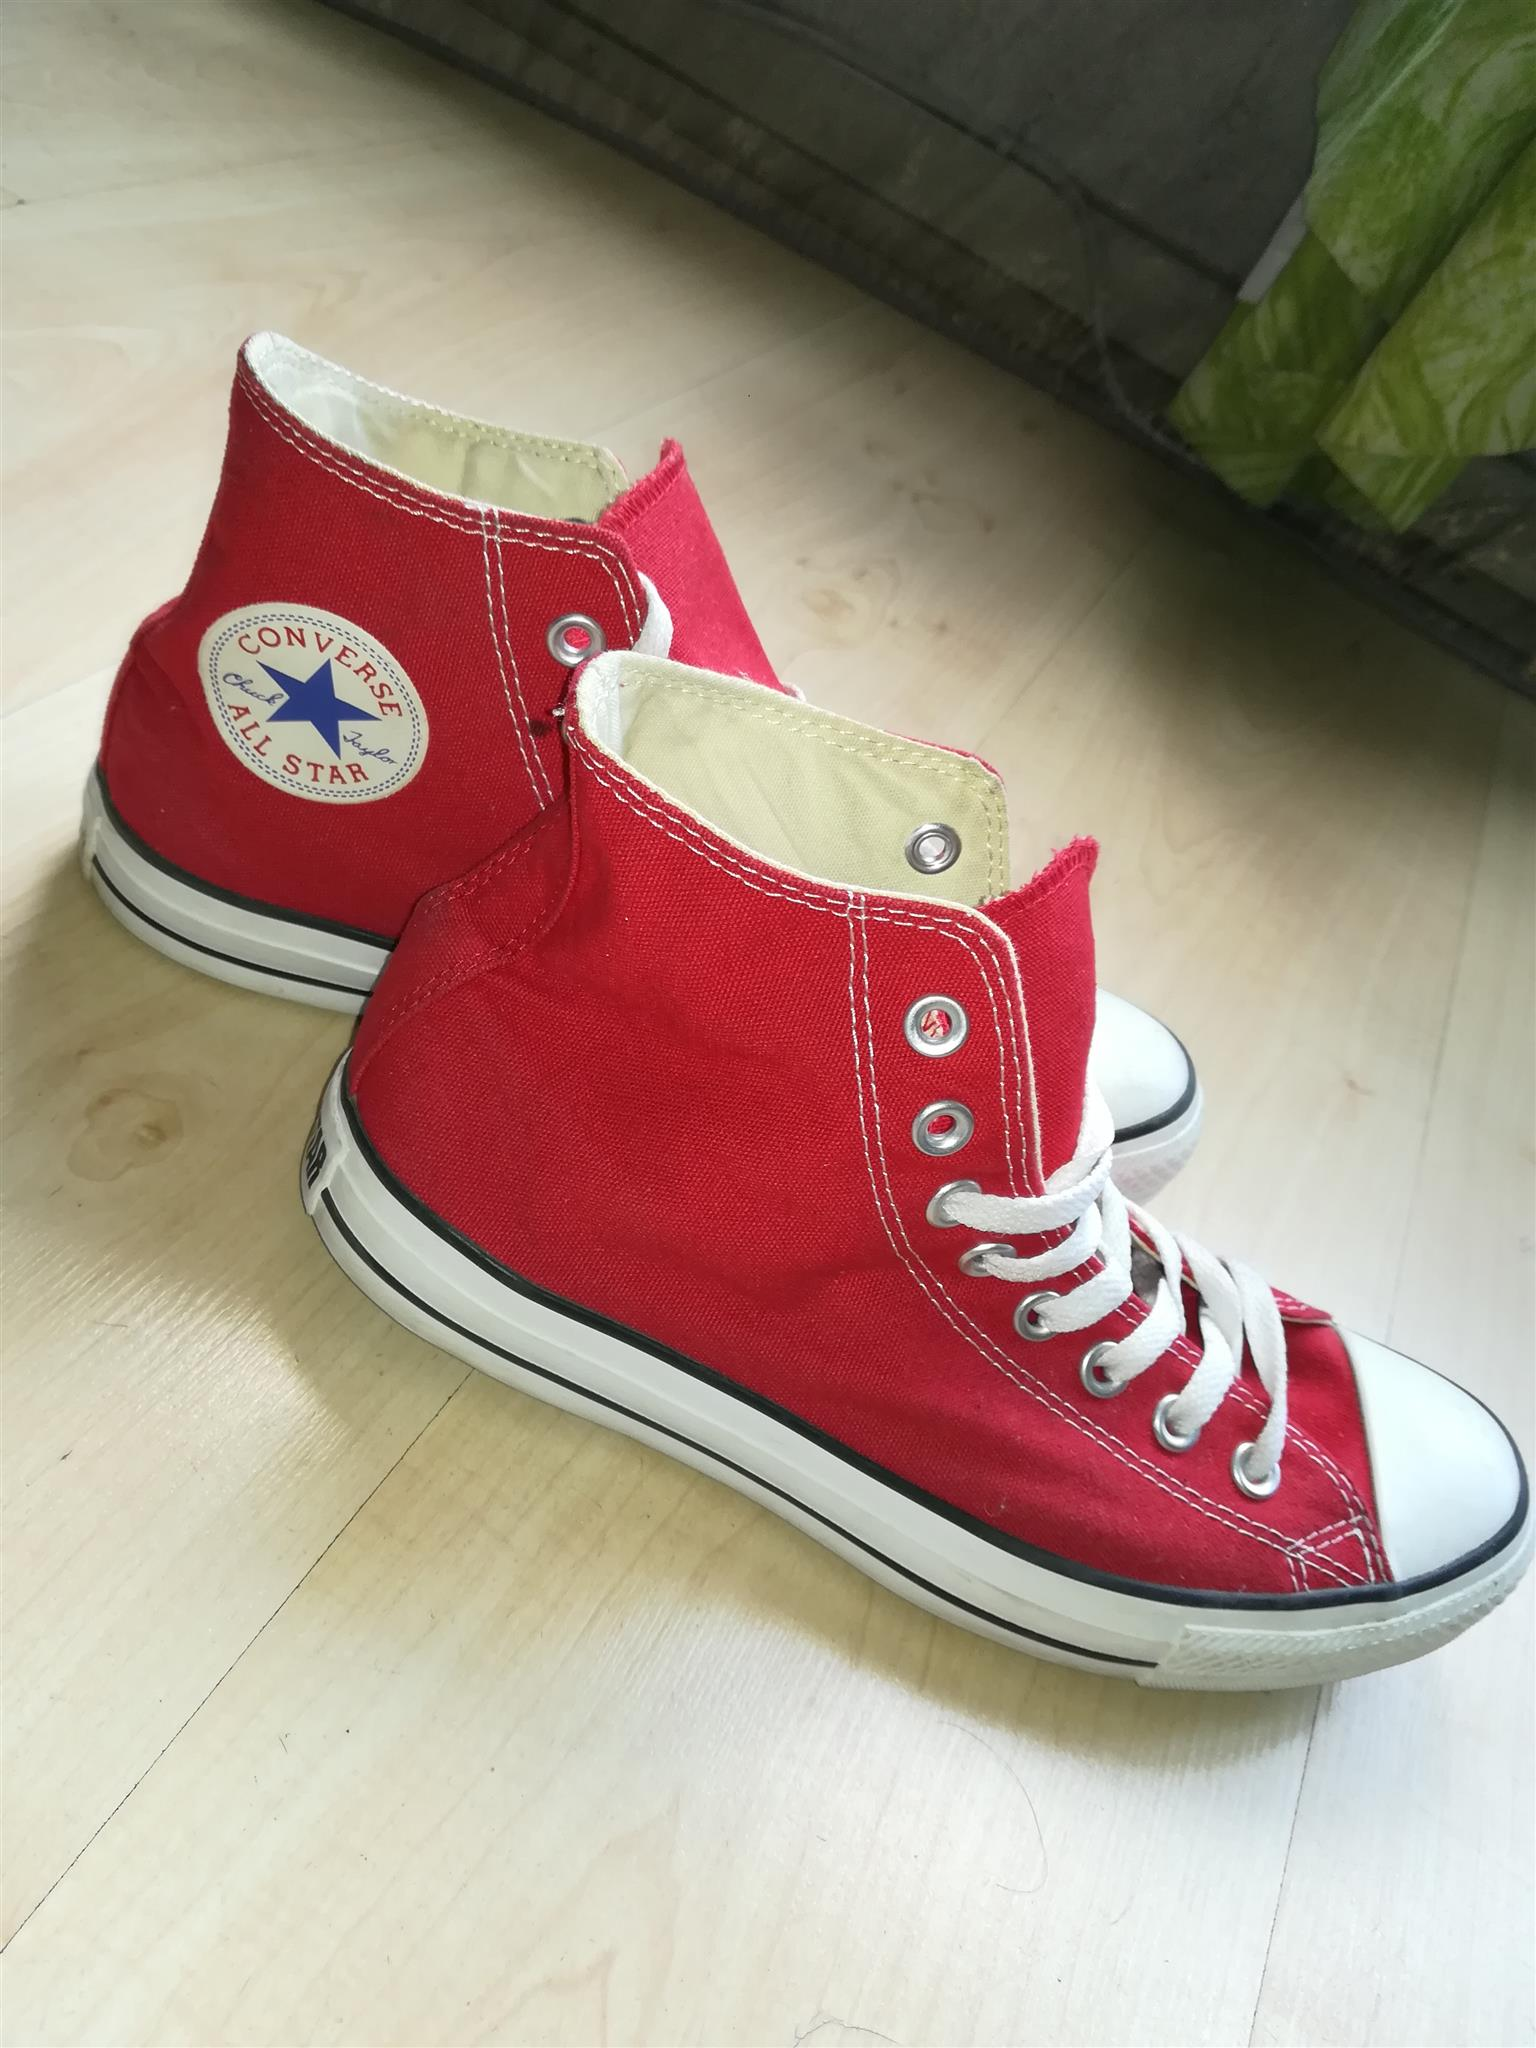 Converse All Star UK 7.5